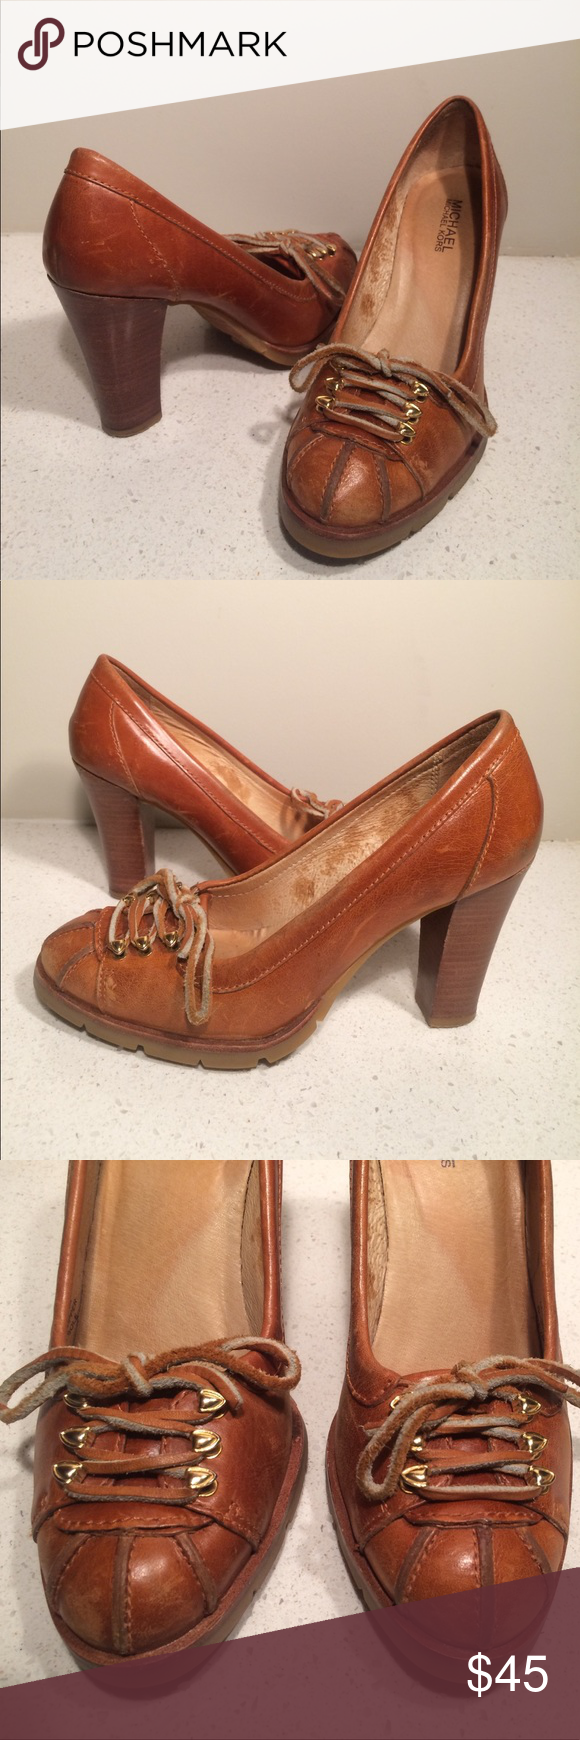 f769ab33c5c4b Michael Kors Lace Up Leather Kitty Heels Well loved with a few scratches  here and there